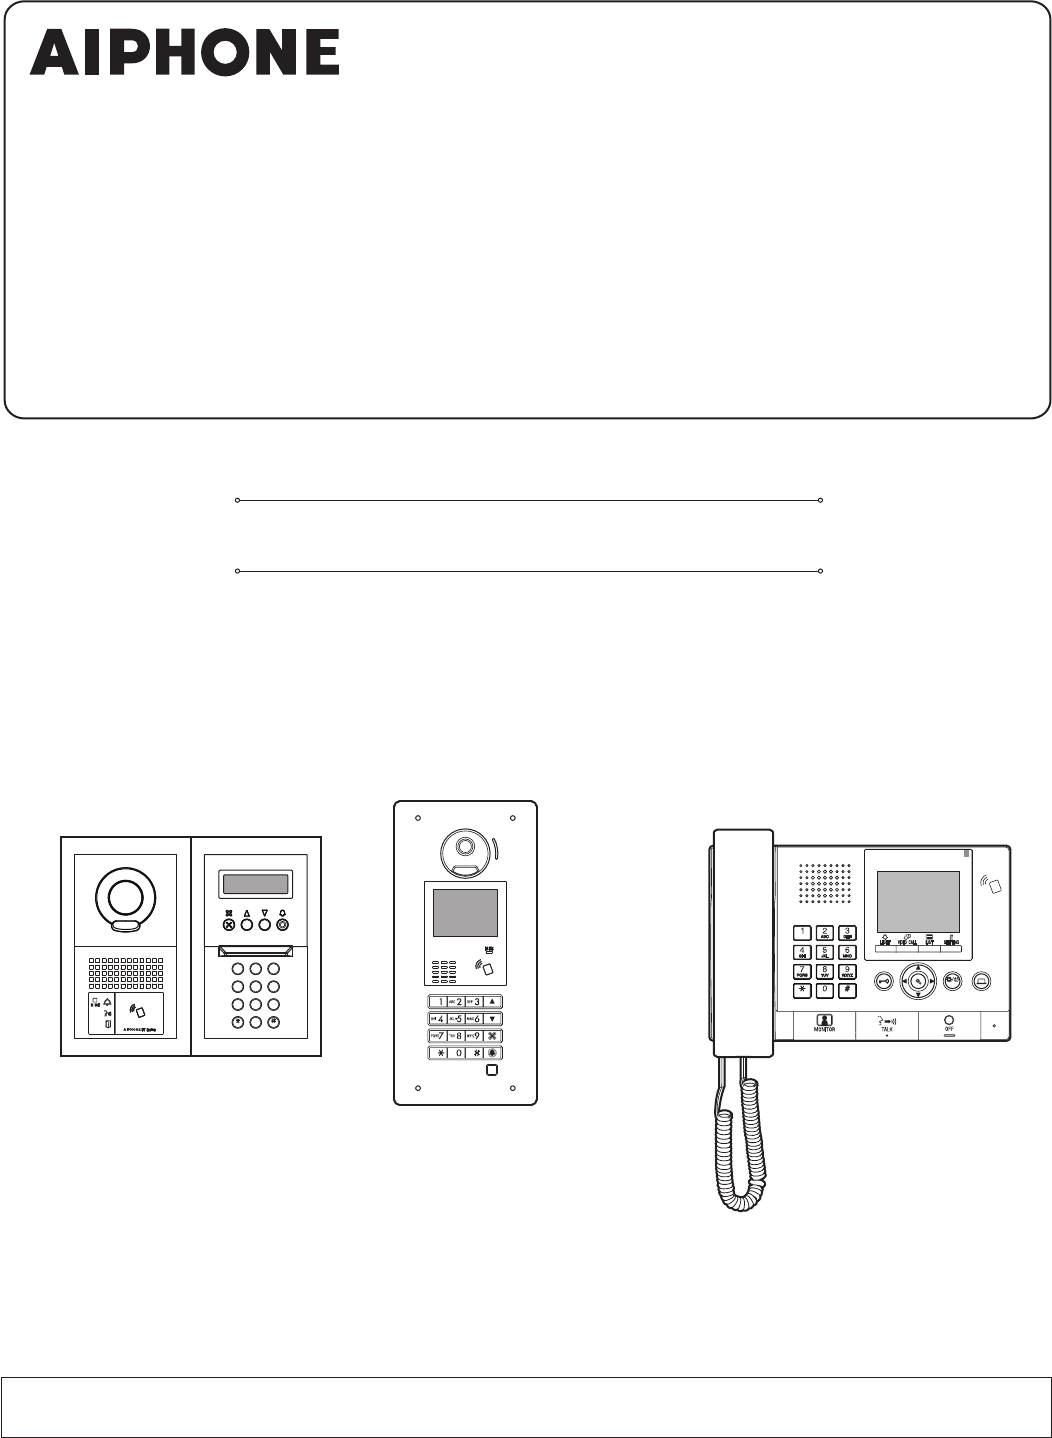 Aiphone Gtdmbn Gt Apartment Intercom System User Manual Eng Dmb Wiring Diagram Mkb 17 05 29 Indd